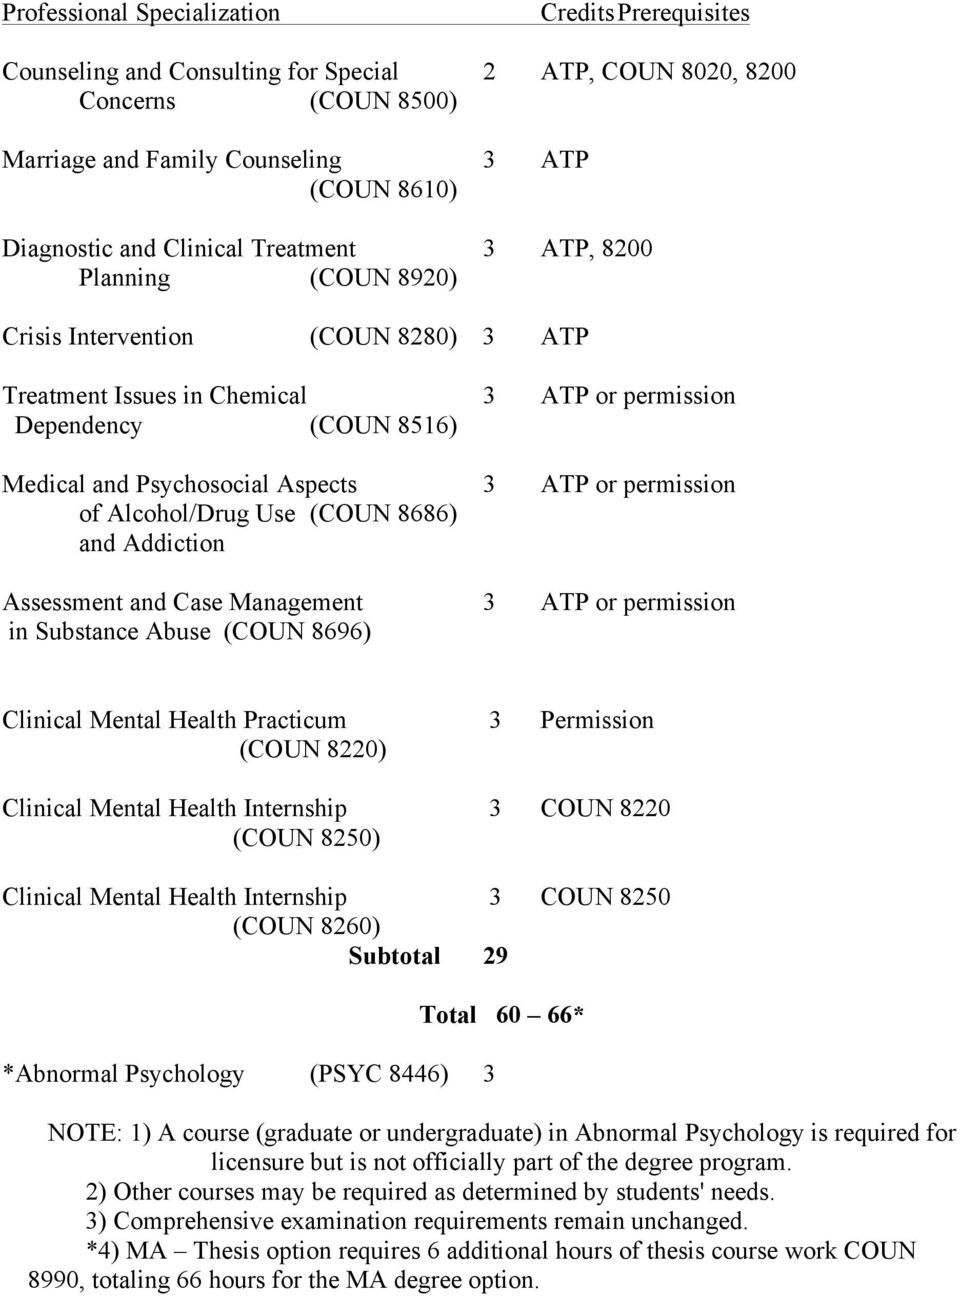 ATP or permission of Alcohol/Drug Use (COUN 8686) and Addiction Assessment and Case Management 3 ATP or permission in Substance Abuse (COUN 8696) Clinical Mental Health Practicum 3 Permission (COUN